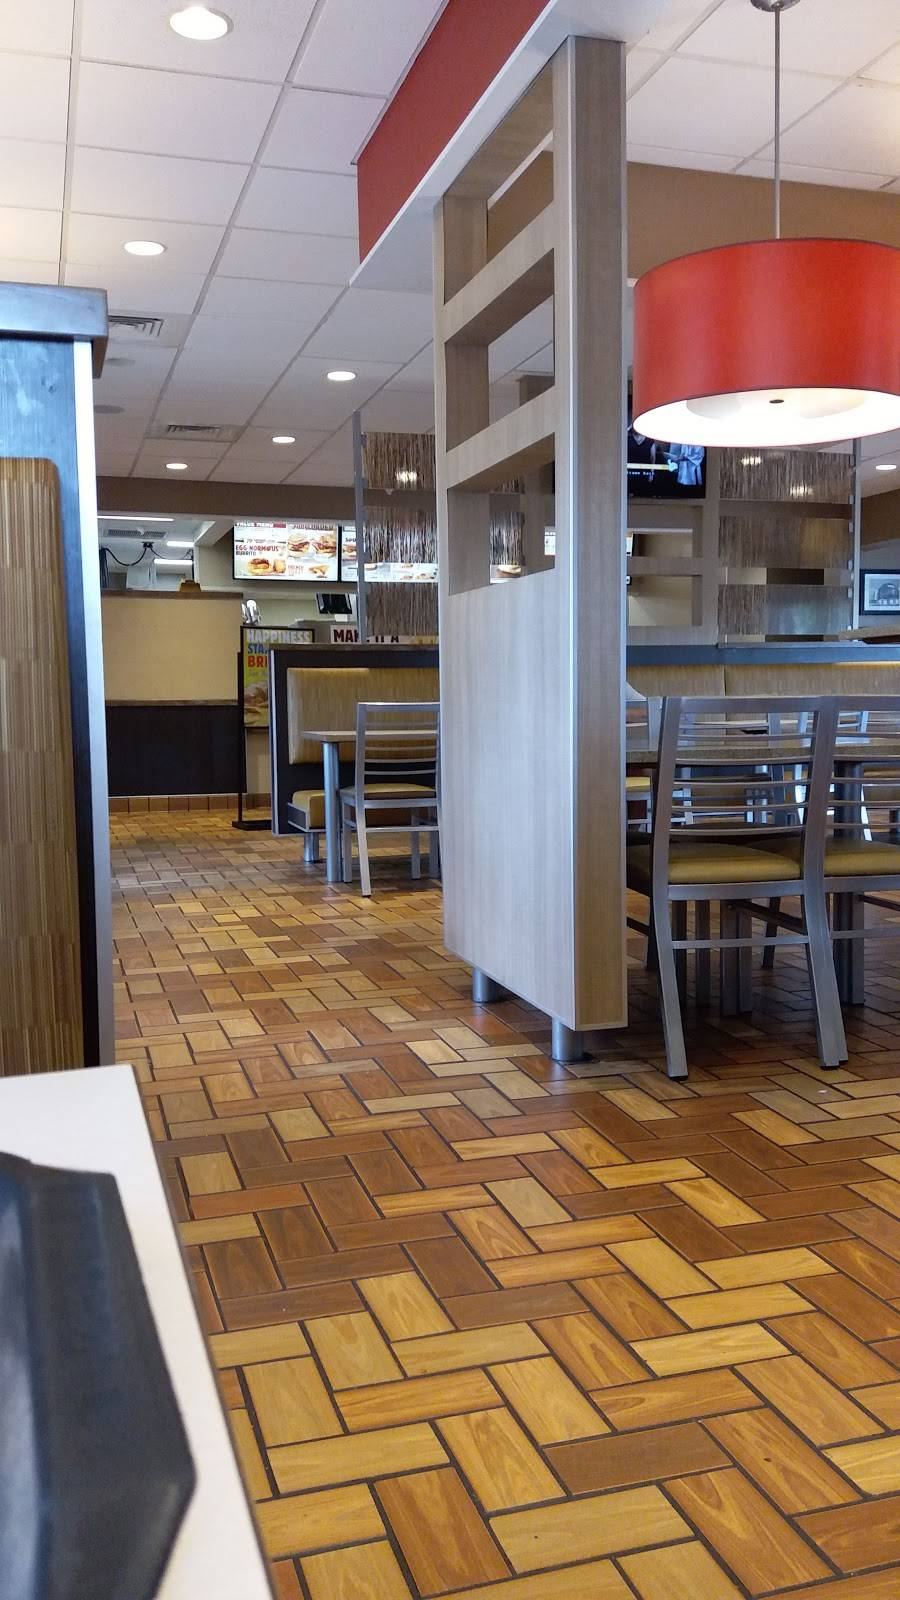 Burger King | restaurant | 5301 E Fowler Ave, Temple Terrace, FL 33617, USA | 8132523950 OR +1 813-252-3950